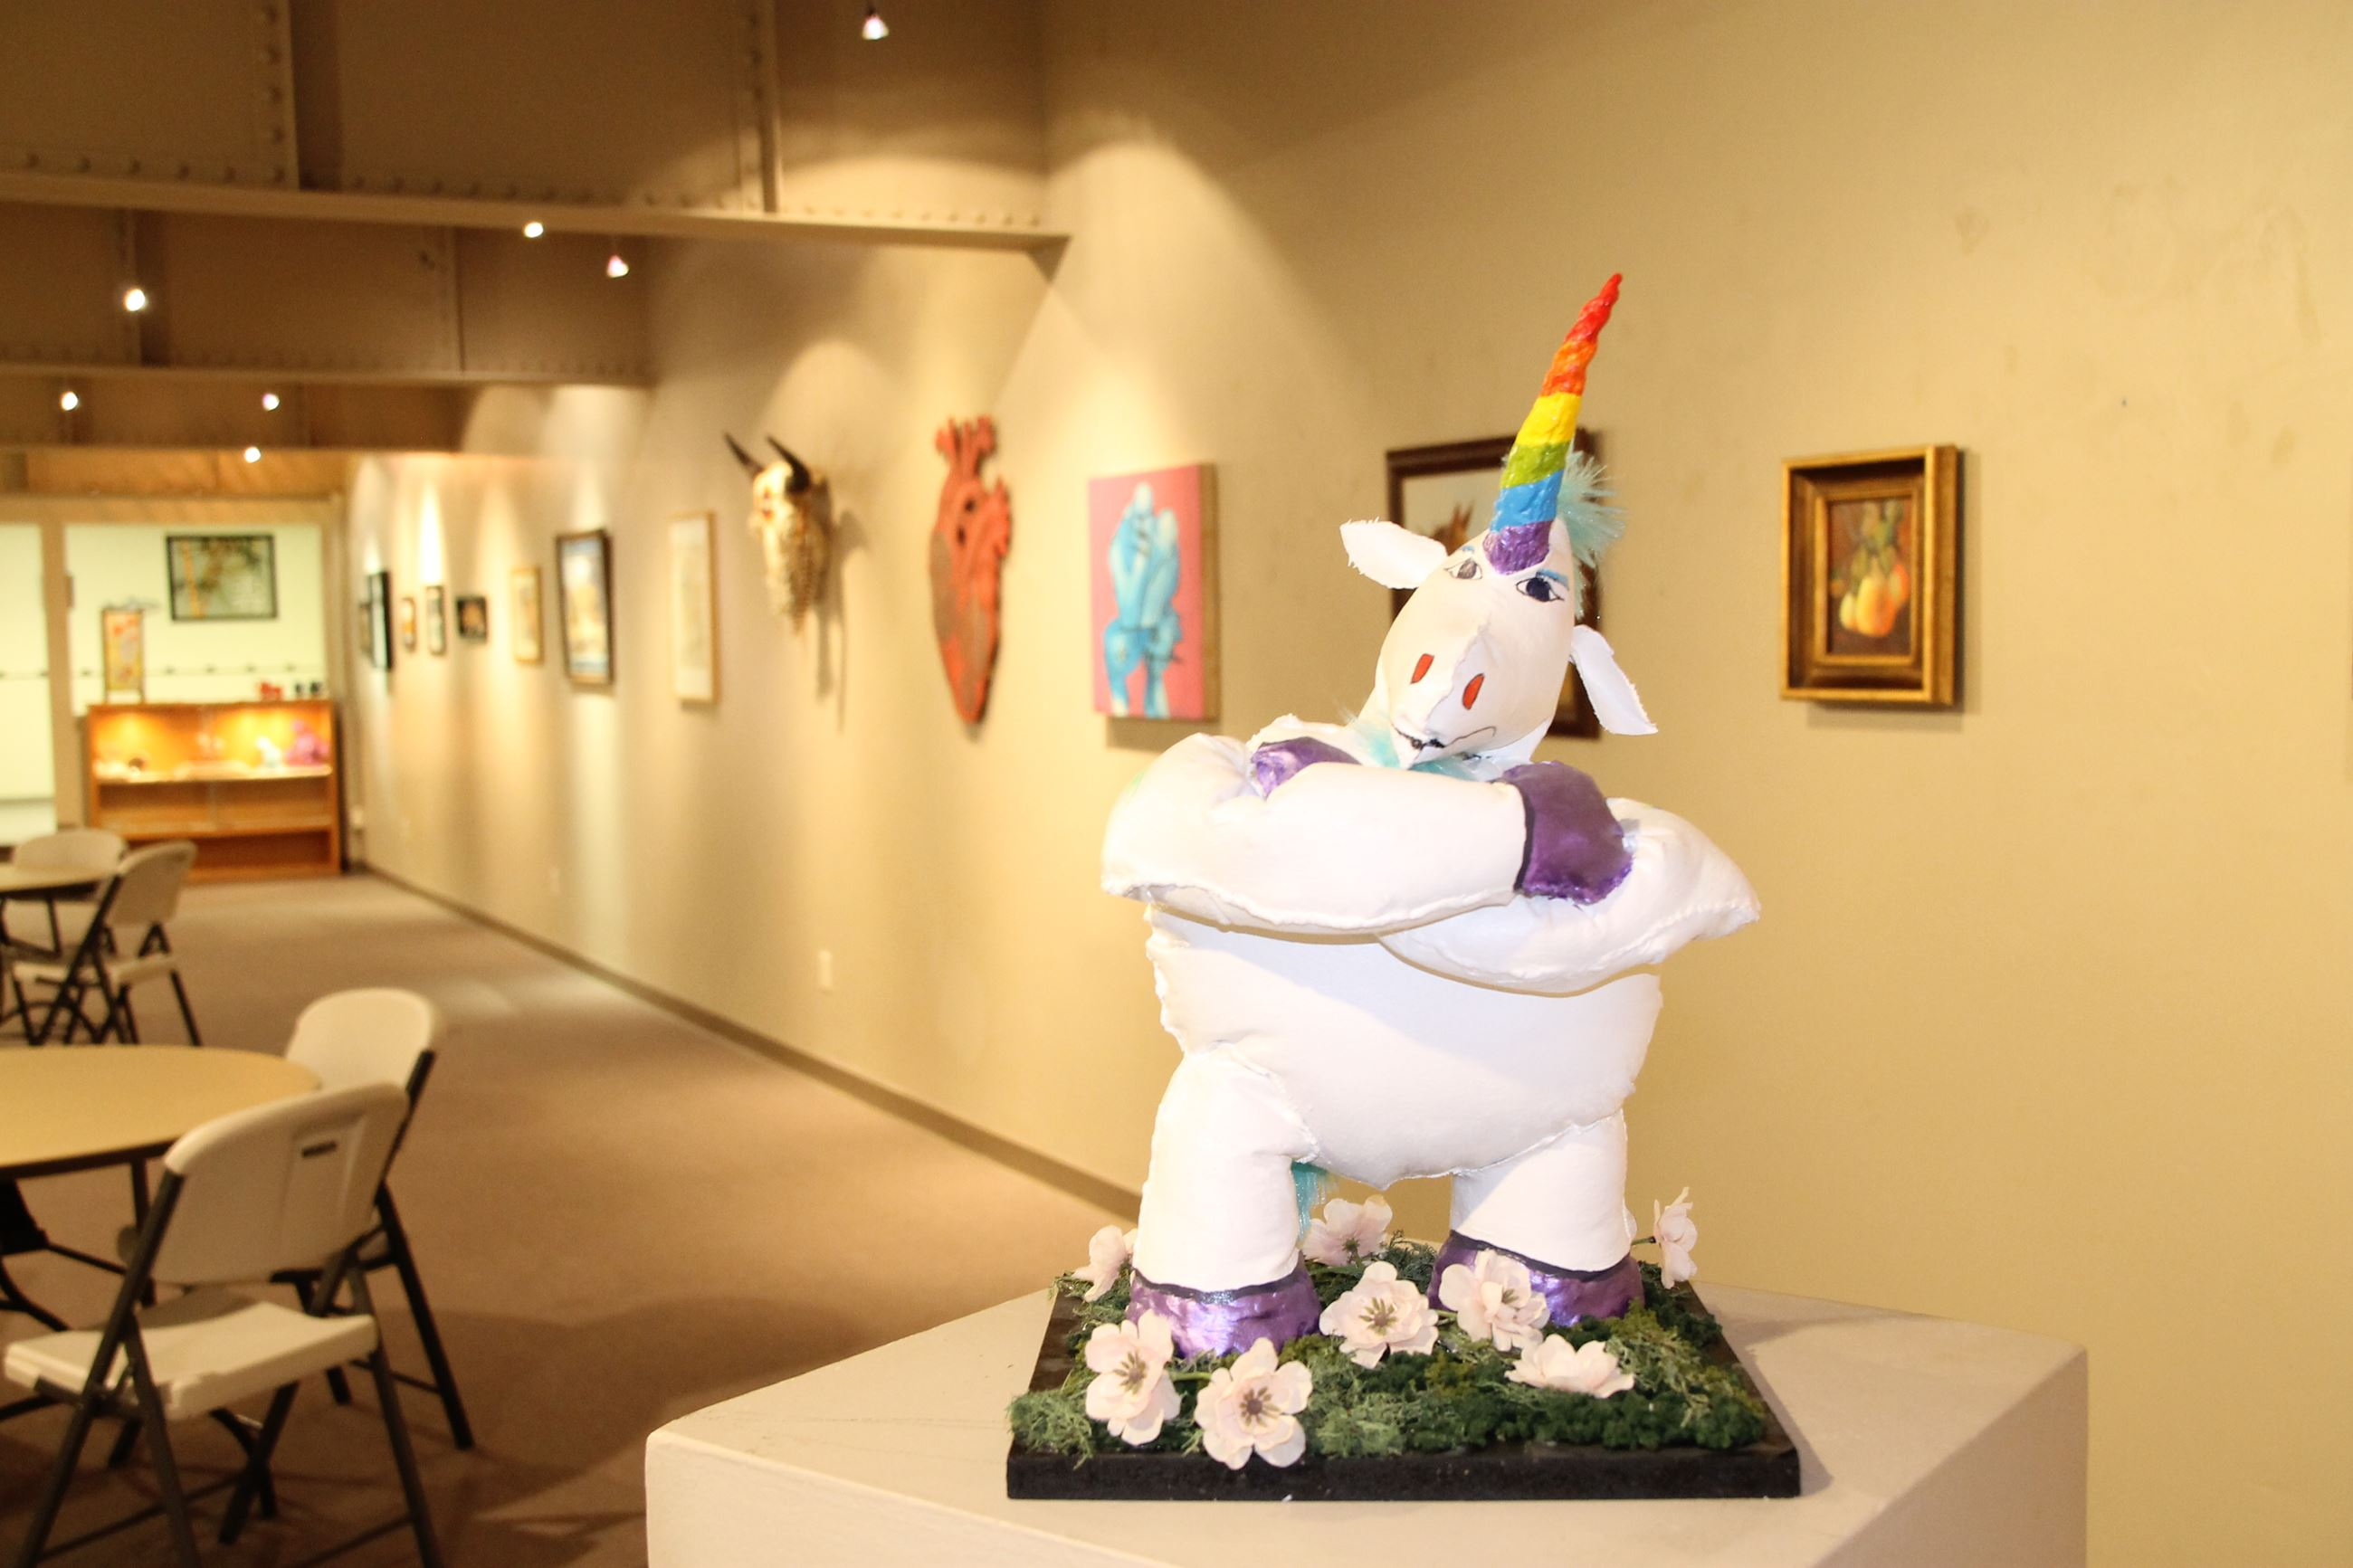 Wildy the Unicorn Mixed Media Soft Sculpture by Tom Schinderling